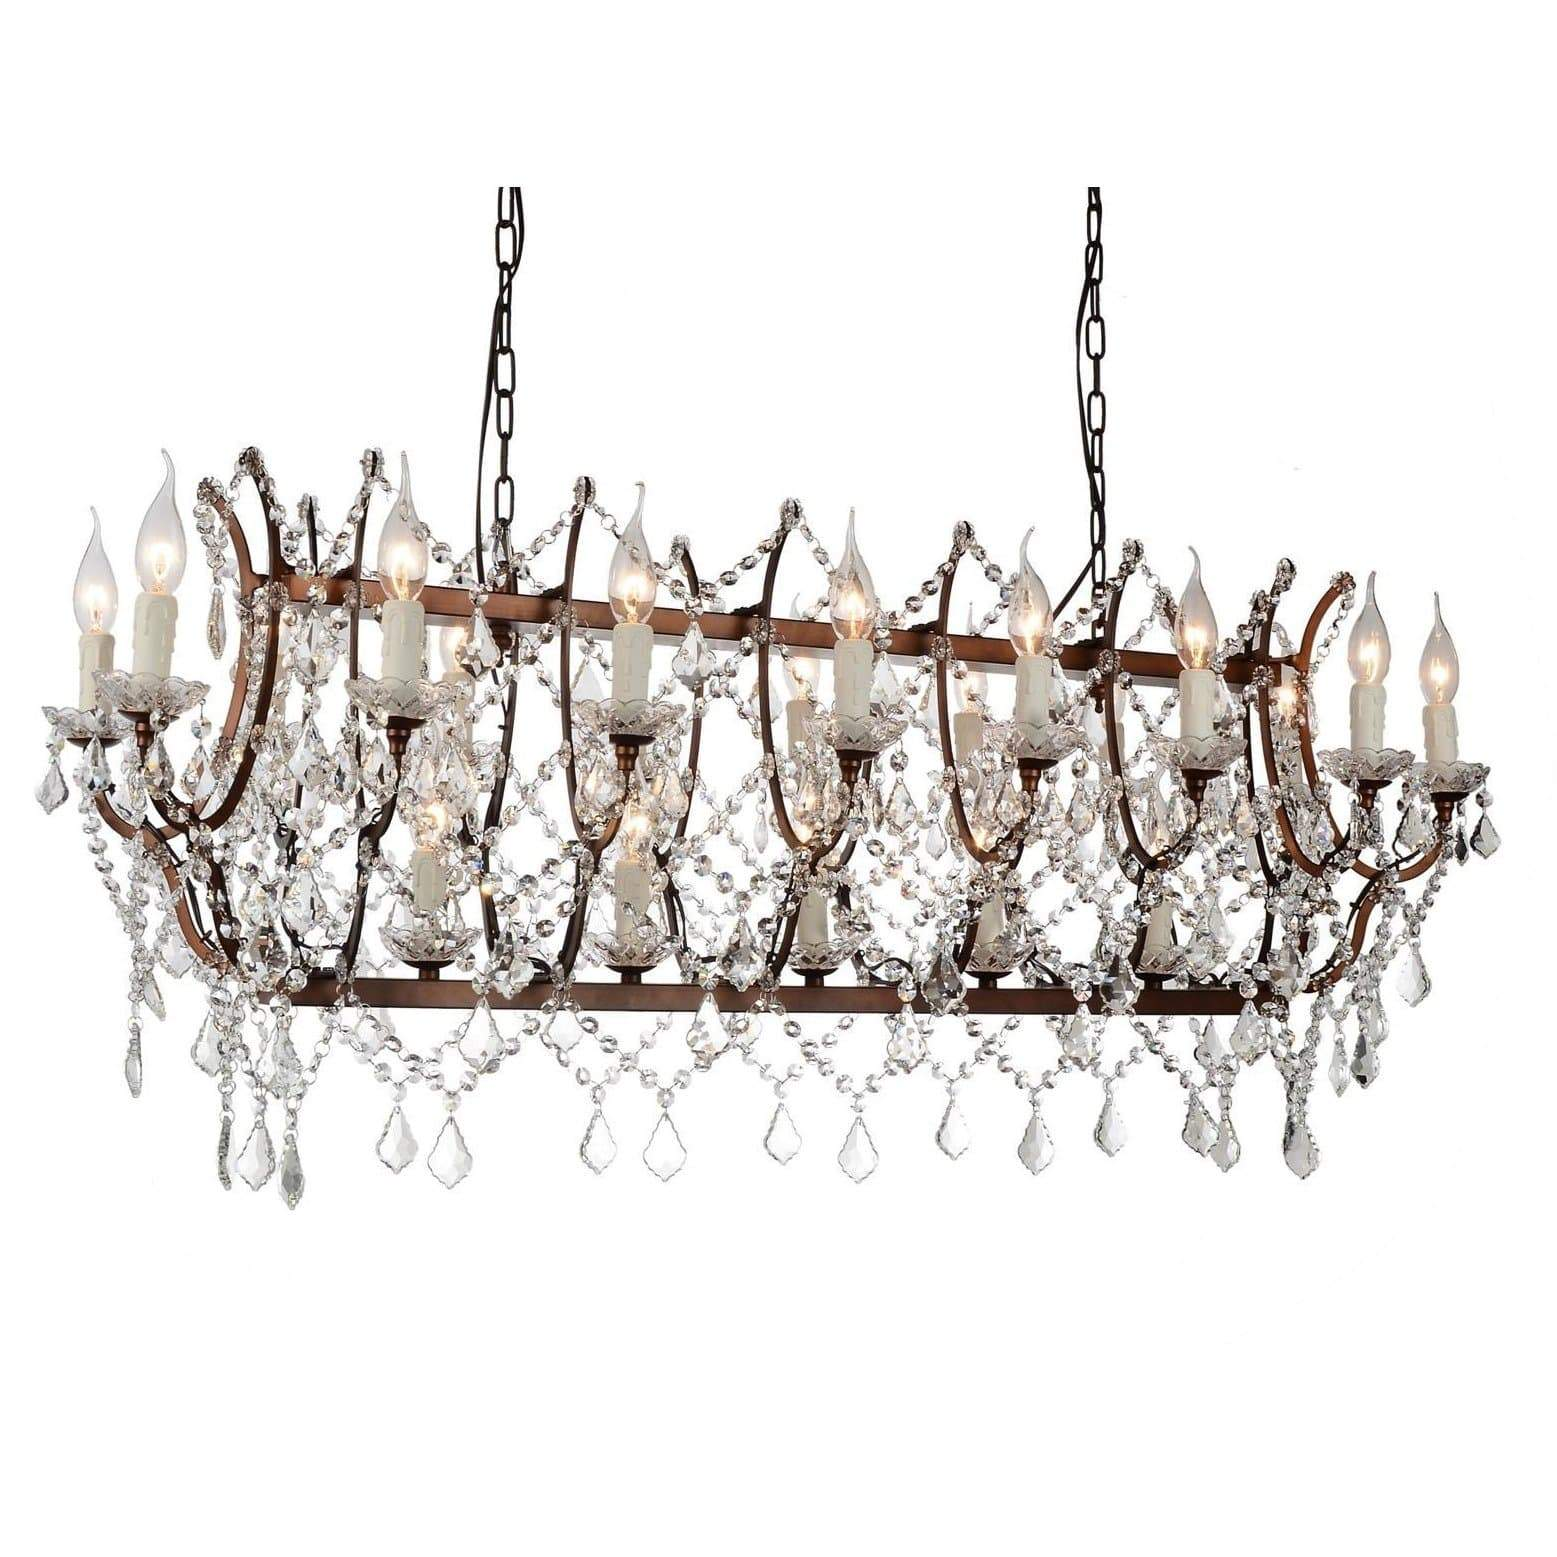 CWI Lighting Chandeliers Light Brown / K9 Clear Phraya 24 Light Up Chandelier with Light Brown finish by CWI Lighting 9910P58-24-199